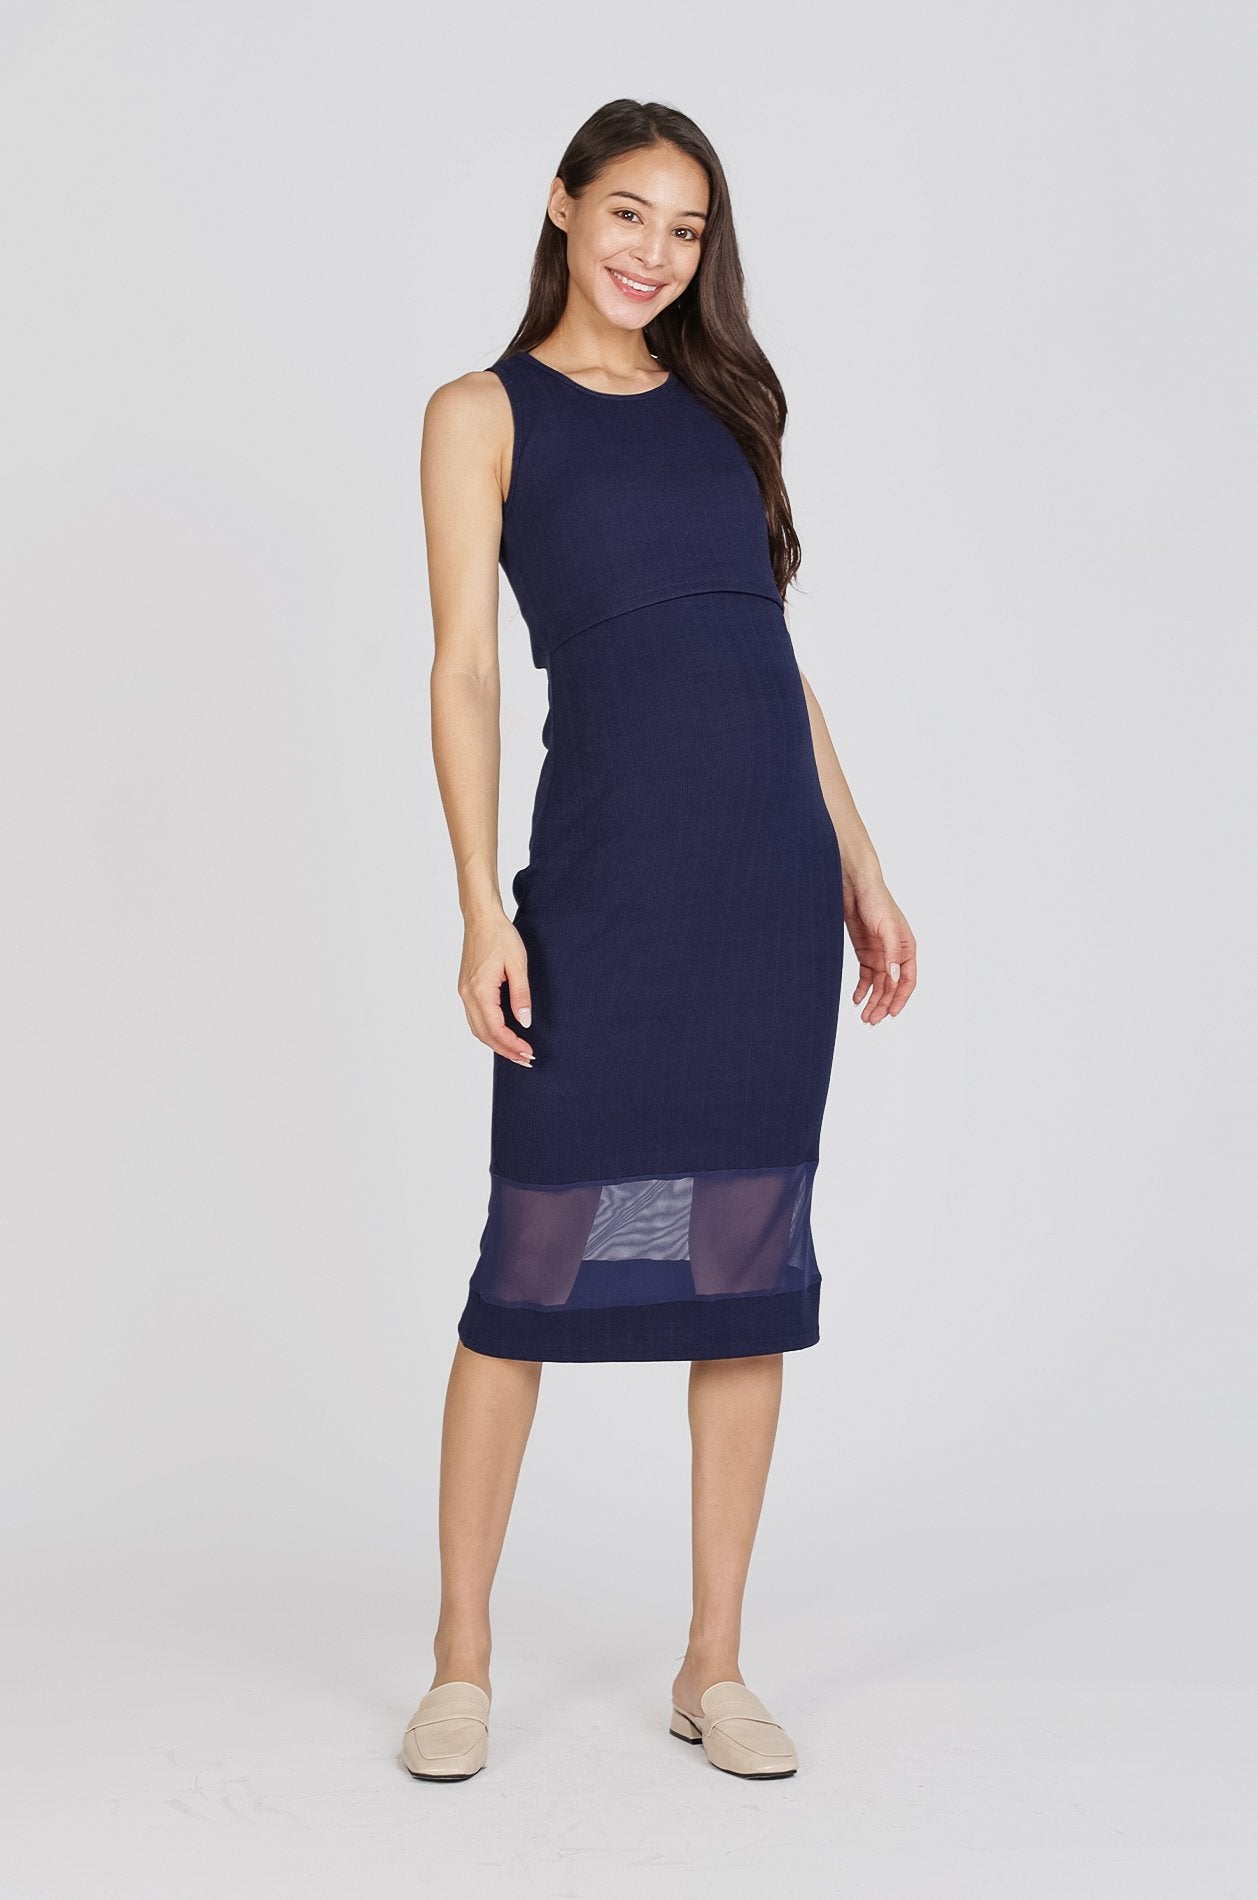 Reya Two Layer Bodycon Nursing Dress In Navy Nursing Wear Jump Eat Cry